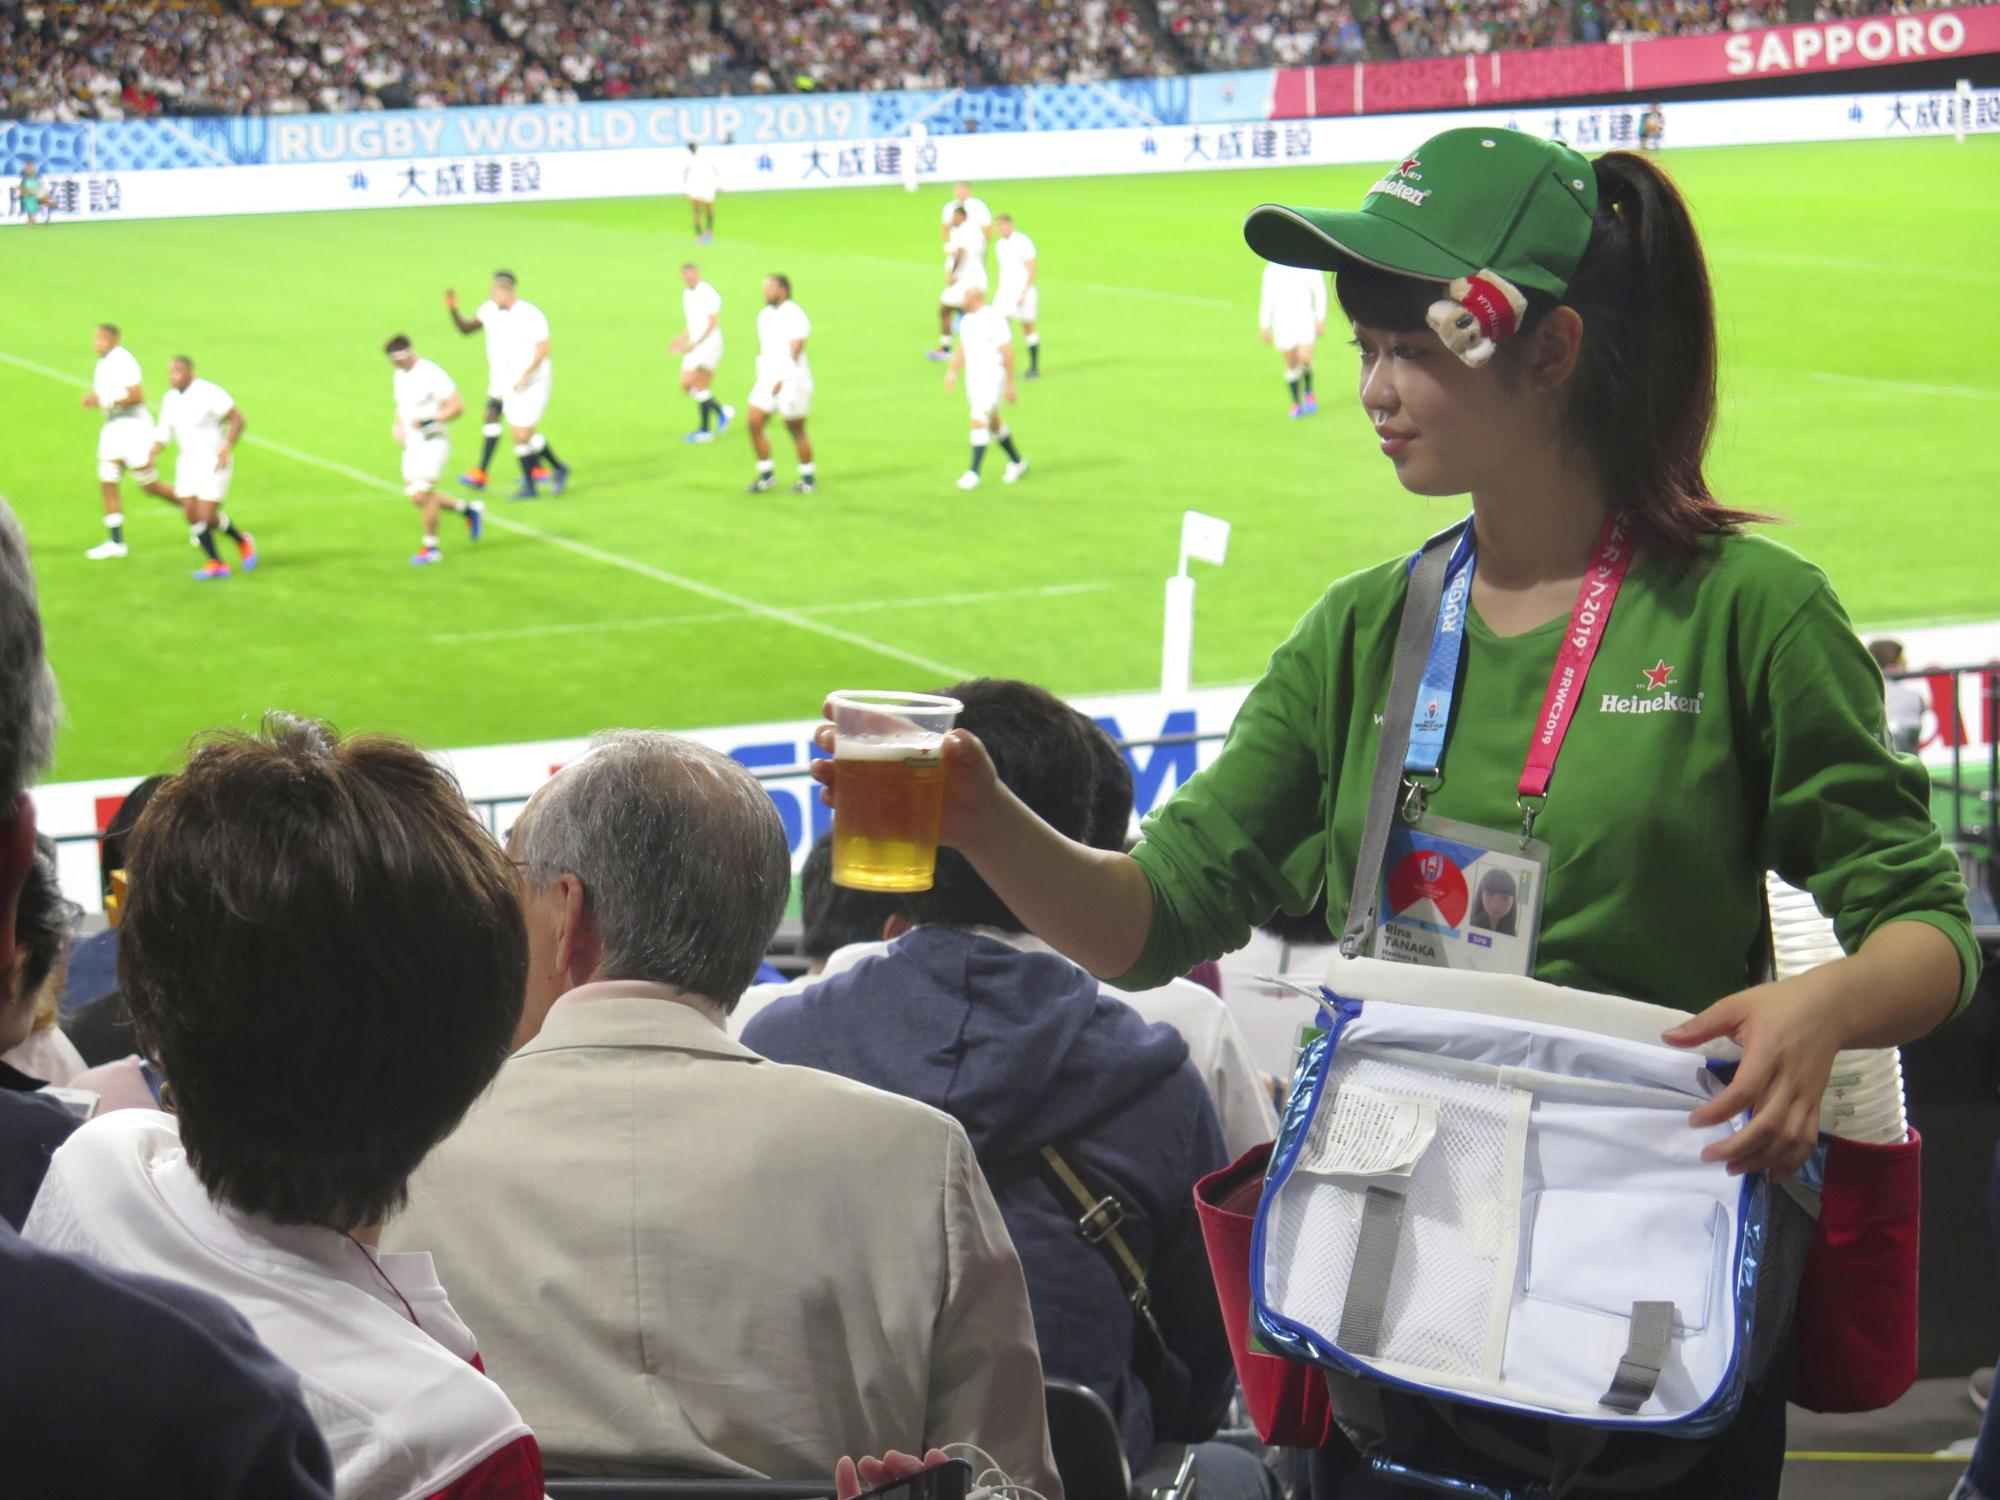 A vender serves beer to spectators of a Rugby World Cup match at the Sapporo Dome on Sept. 22. | KYODO